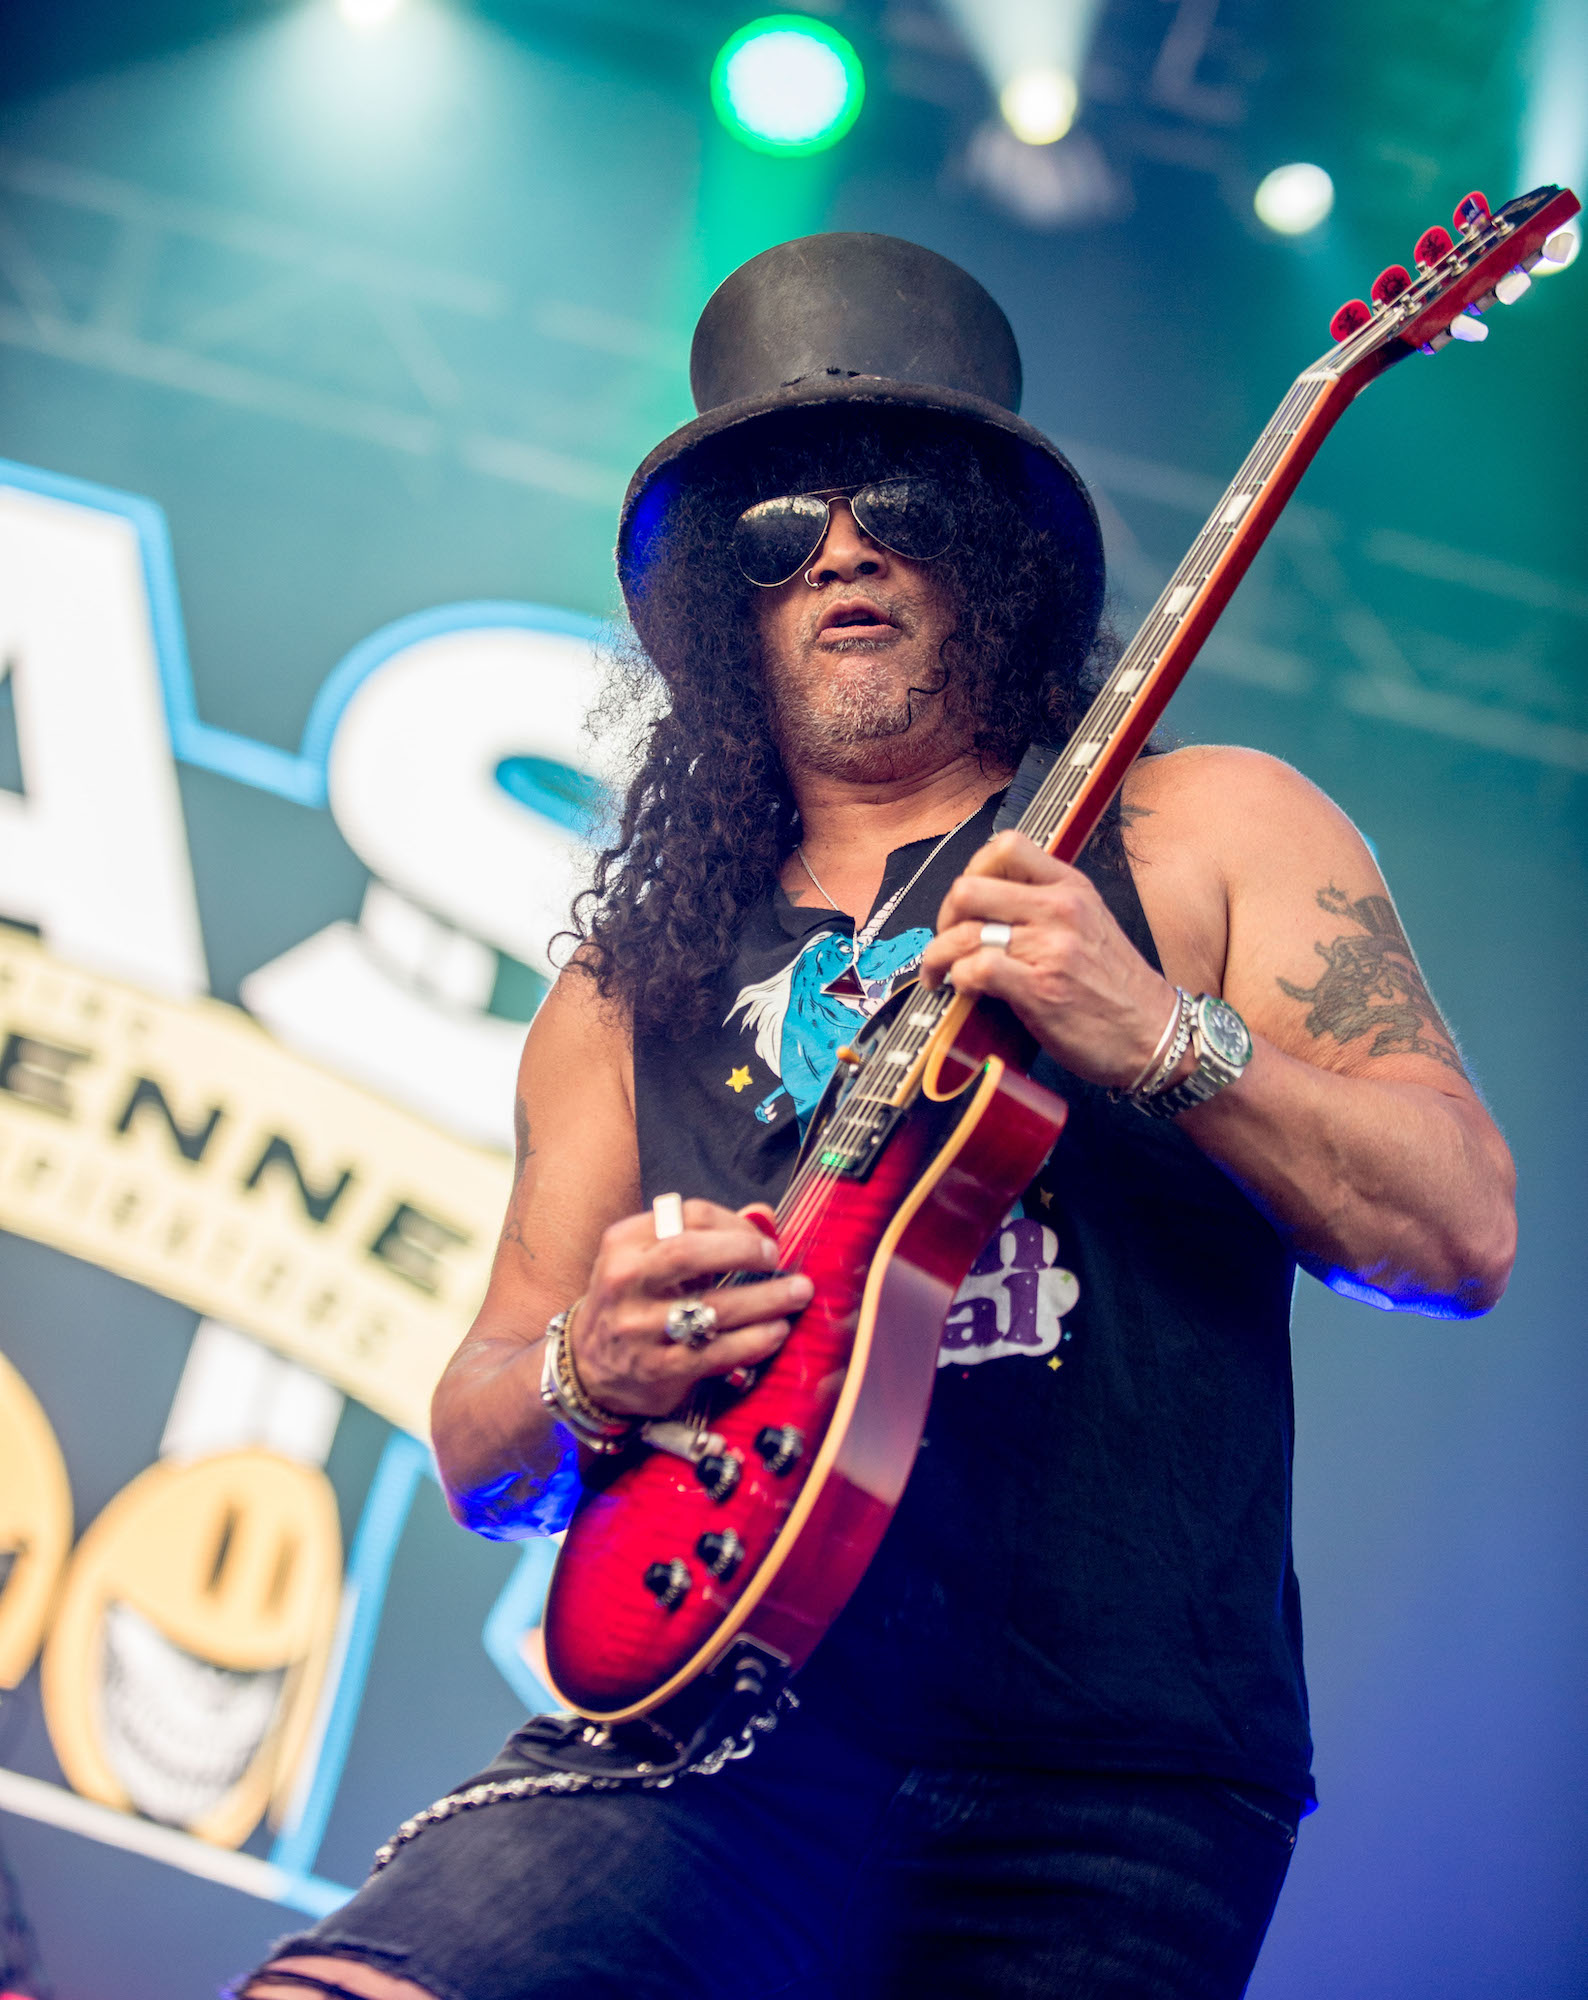 SLASH Featuring Myles Kennedy And The Conspirators Live at Lollapalooza [GALLERY] 18